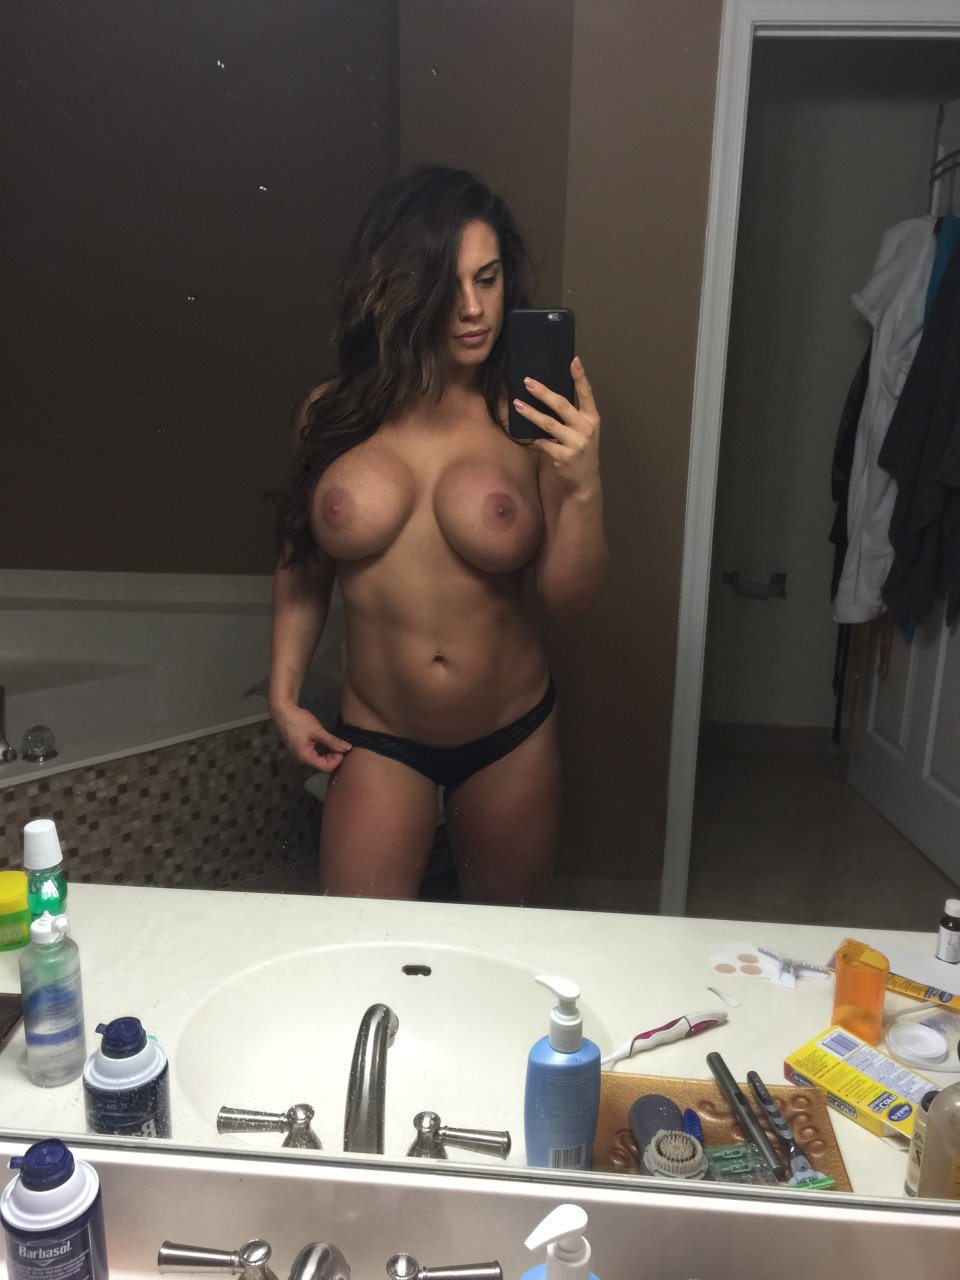 thefappening blog